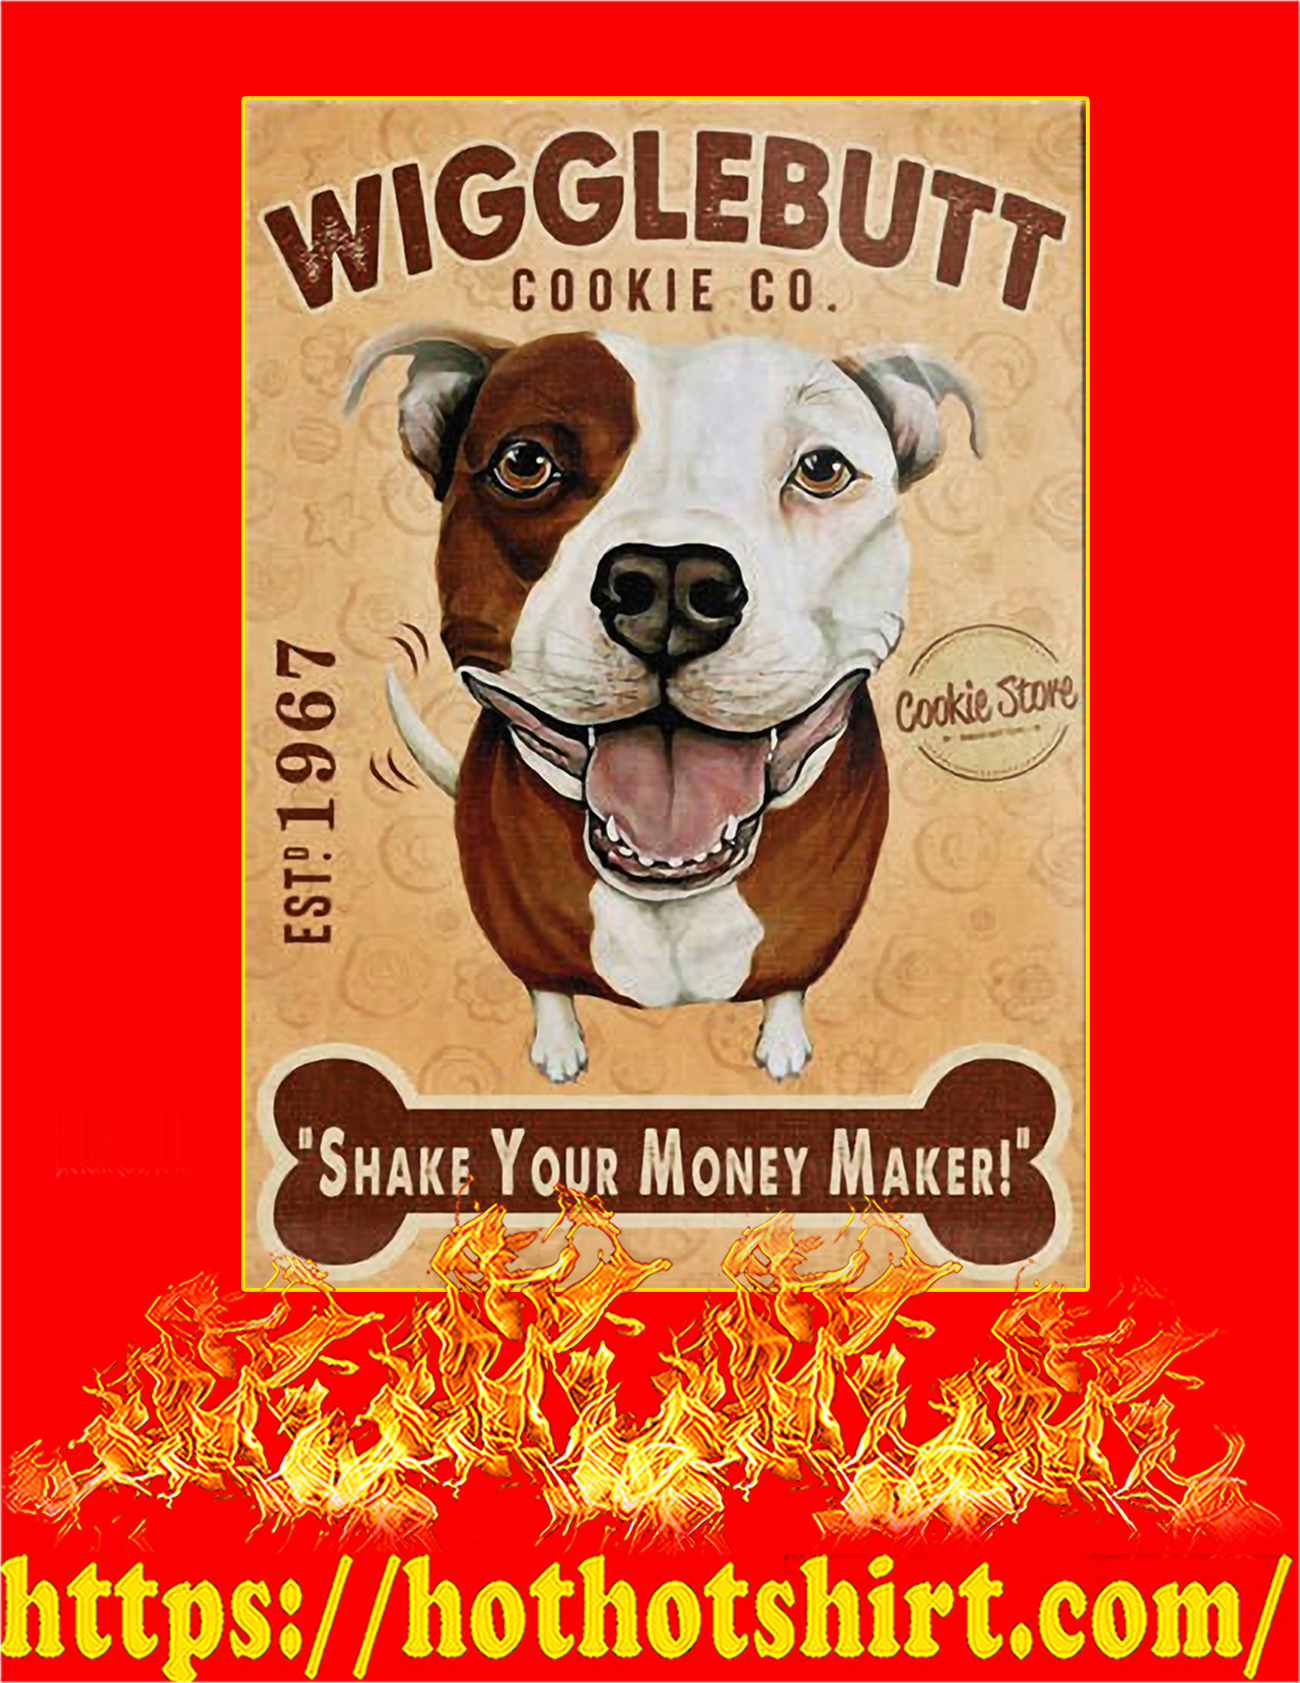 Wigglebutt pit bull dog cookie company poster - A2